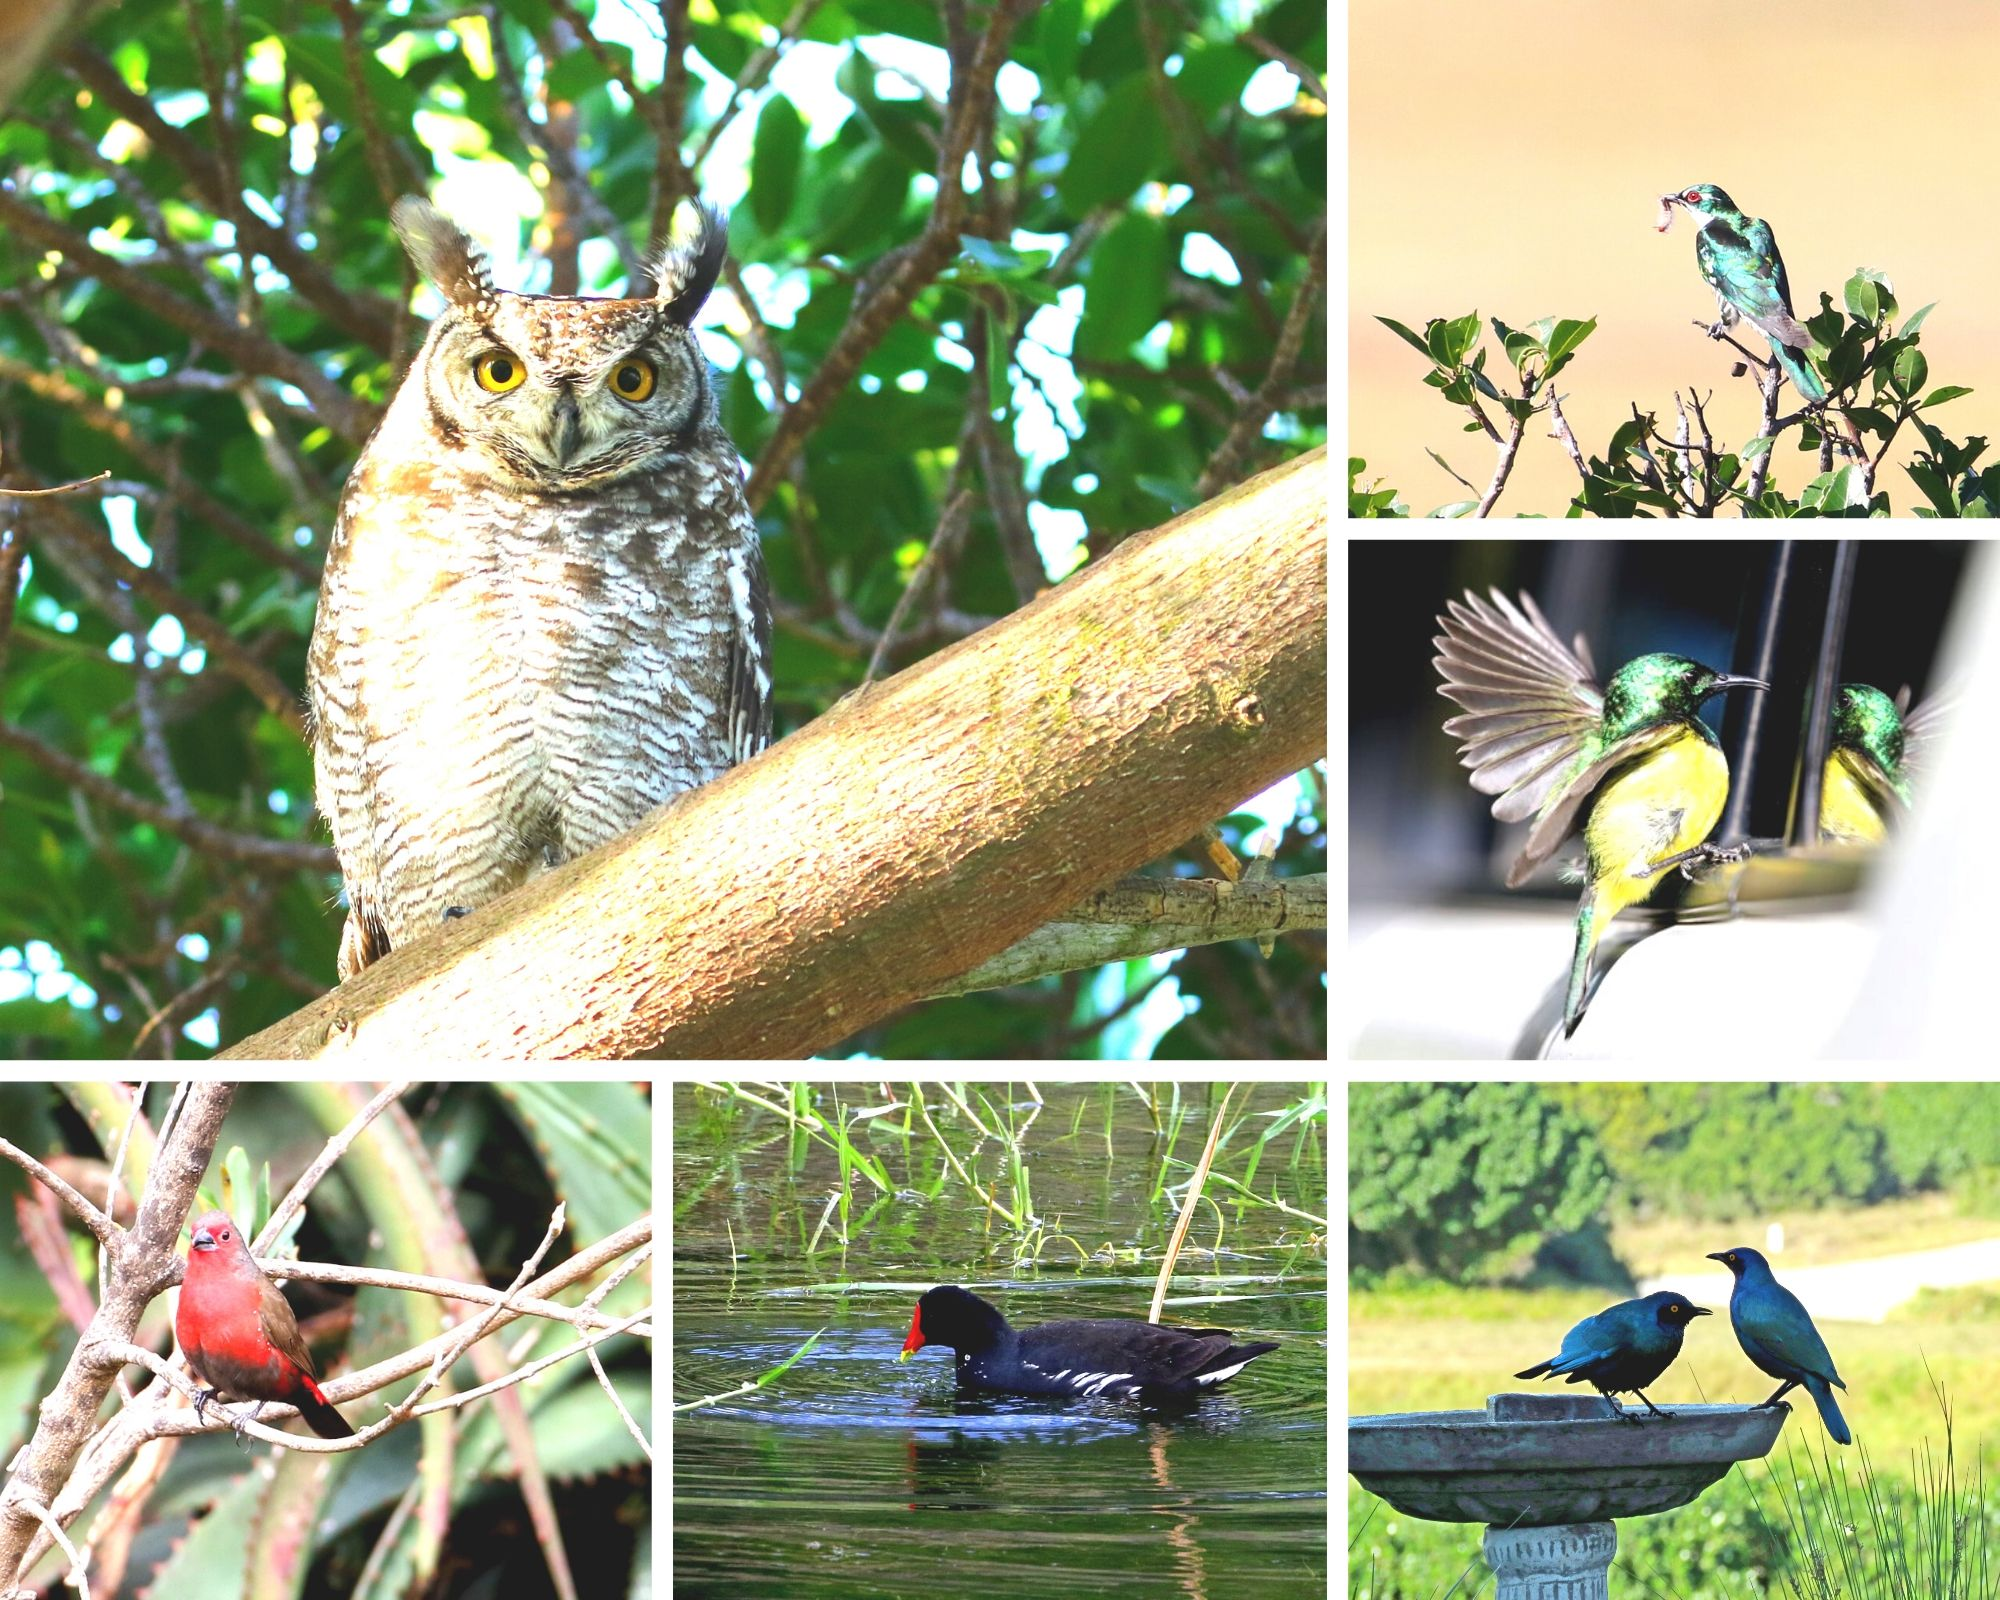 These are just a few of the beautiful birds that can be found at Sardinia Bay estate.